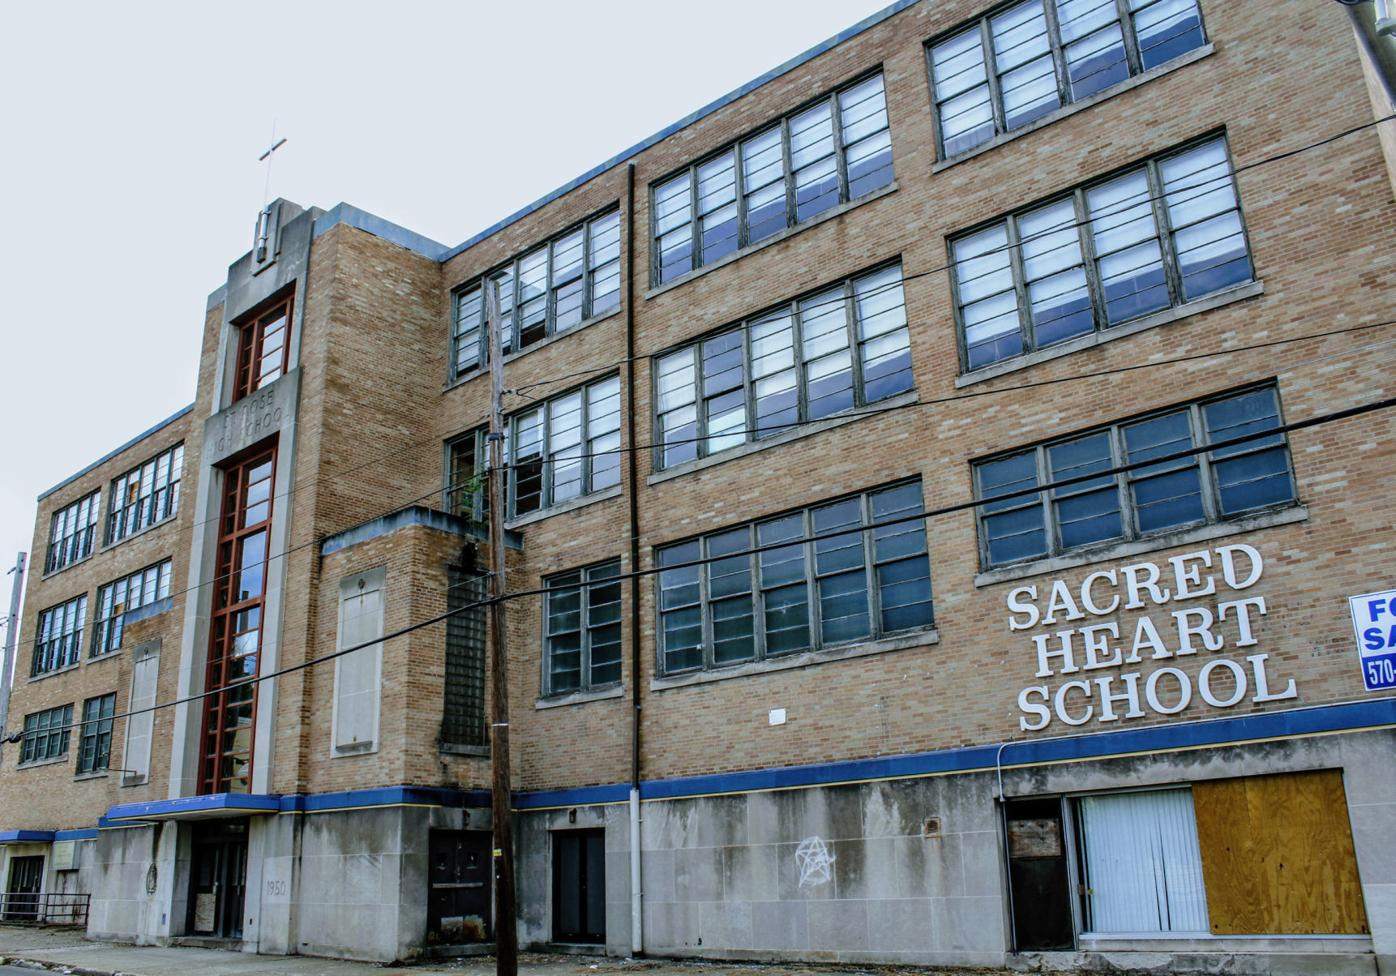 St. Rose/Sacred Heart High School in downtown Carbondale. RICH COX/FOR THE VALLEY ADVANTAGE